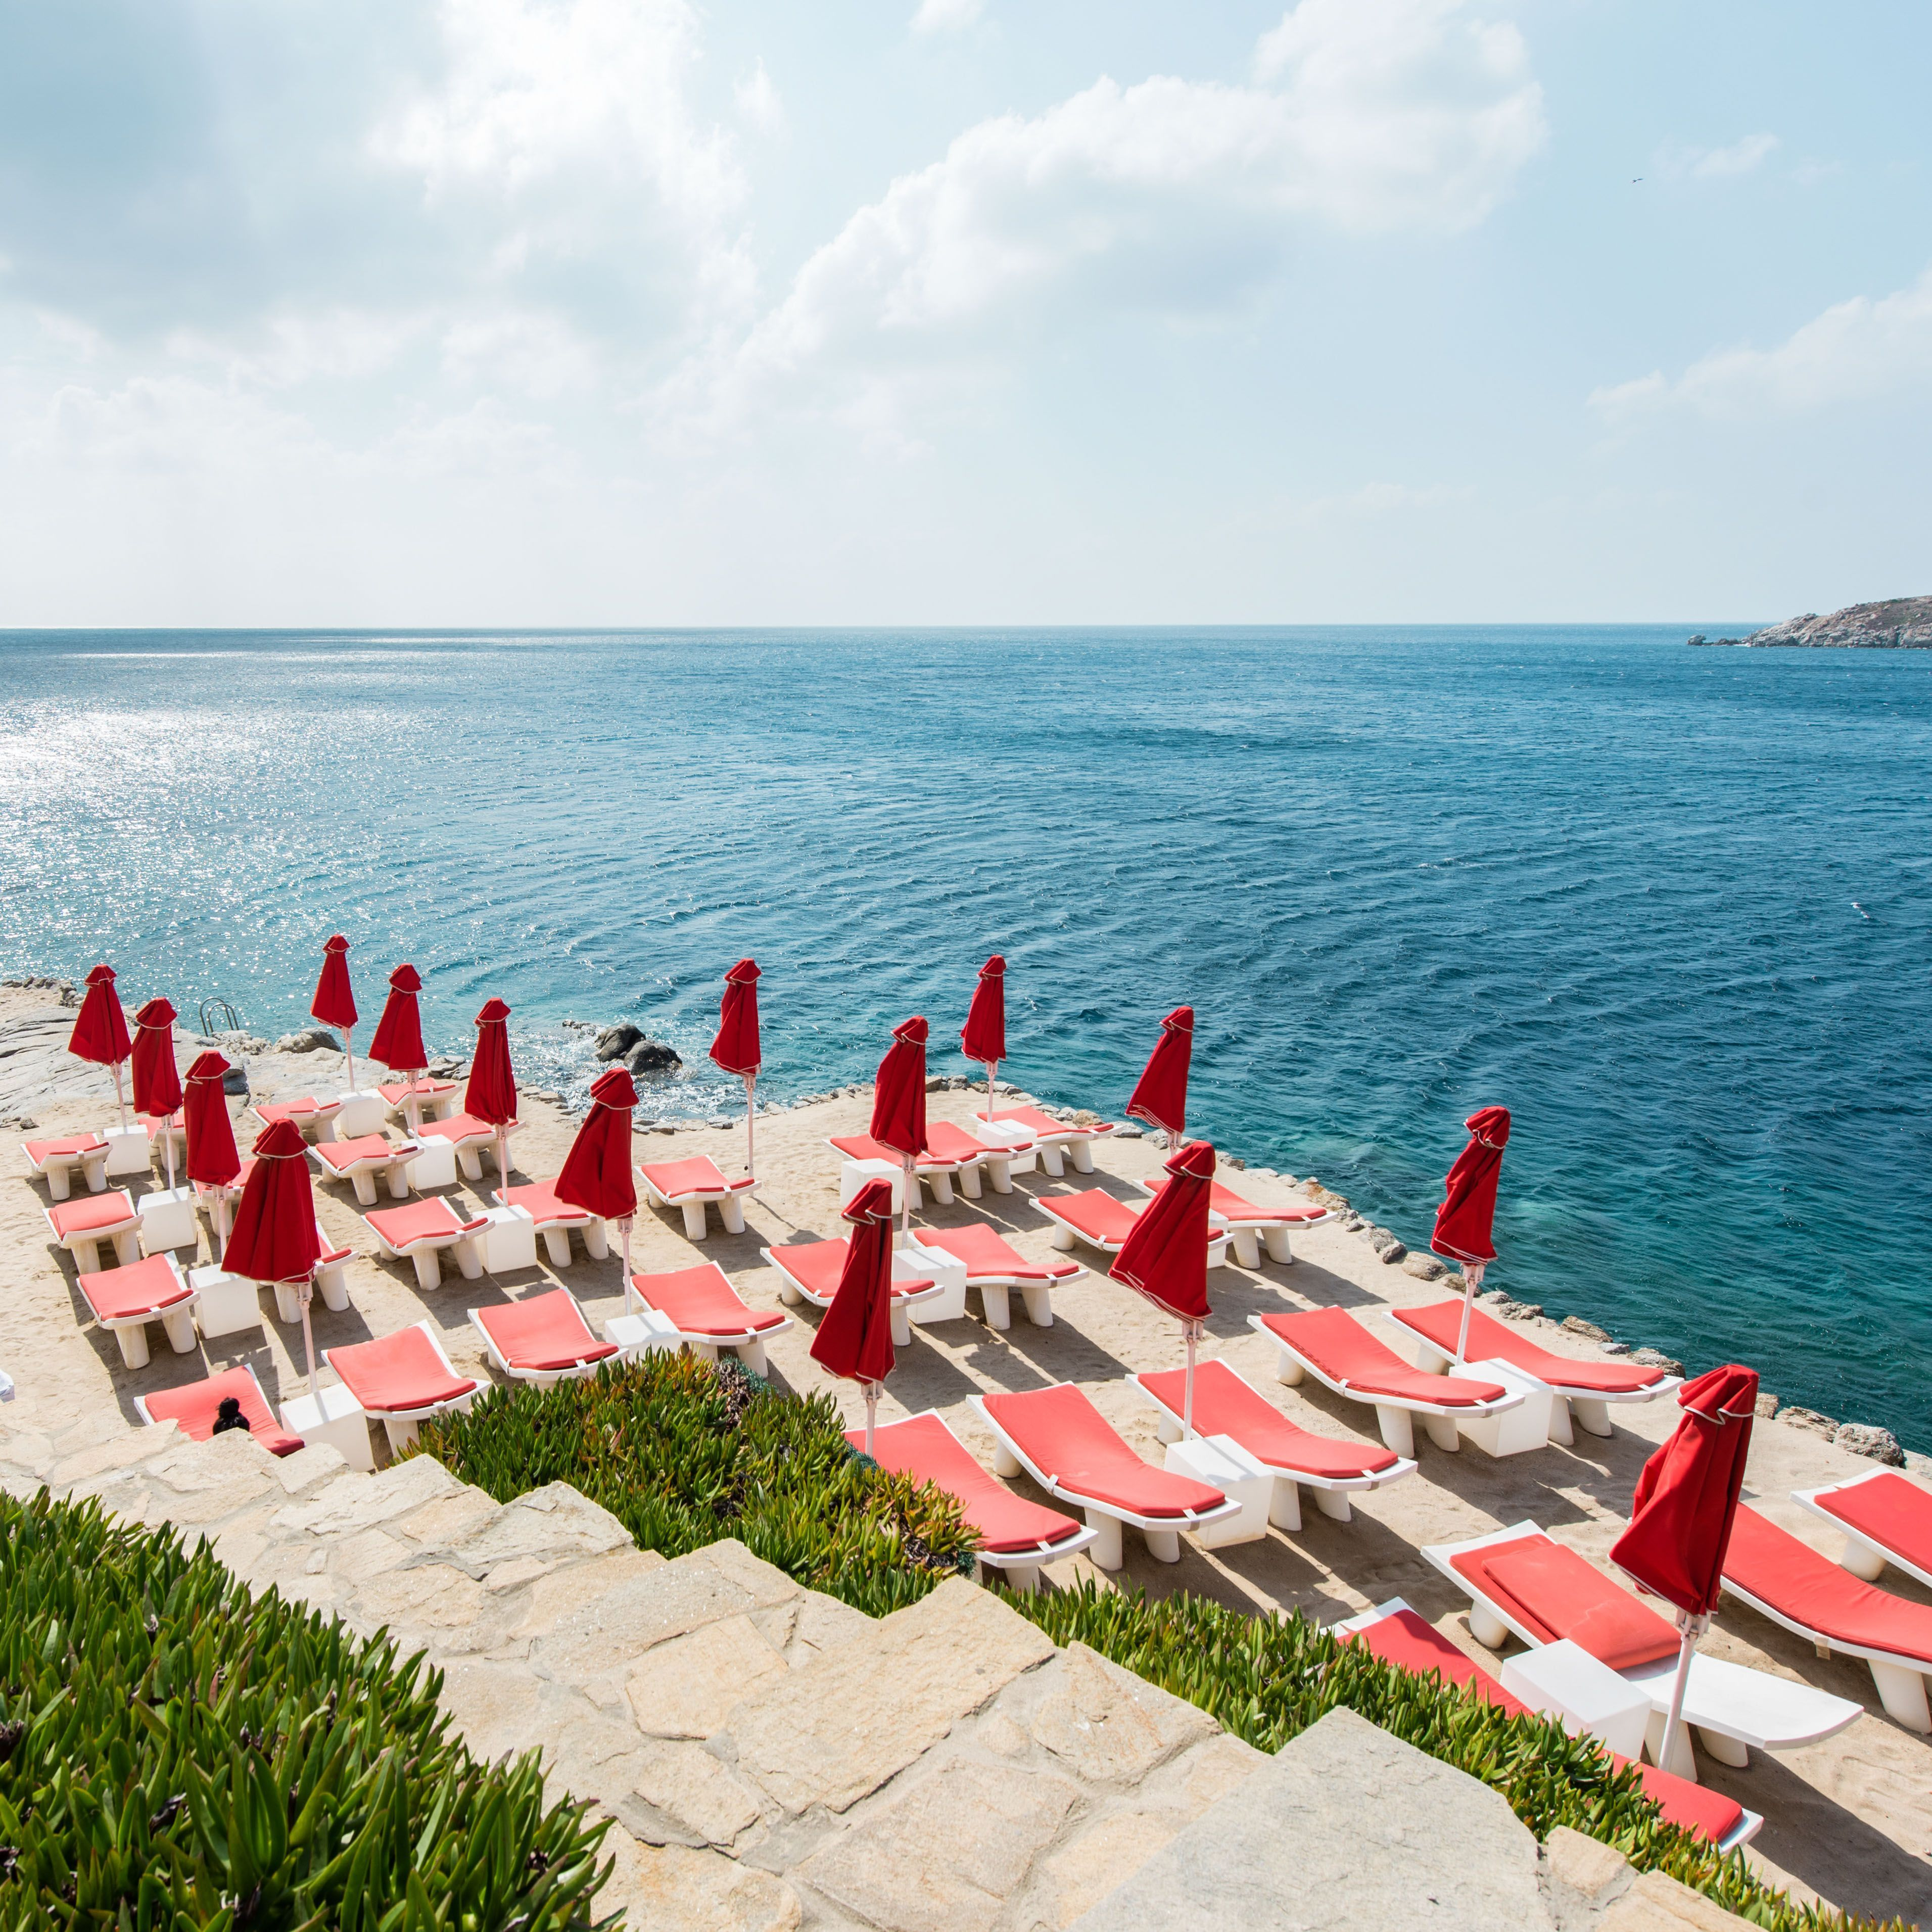 Can you guess where in the Mediterranean this photo was